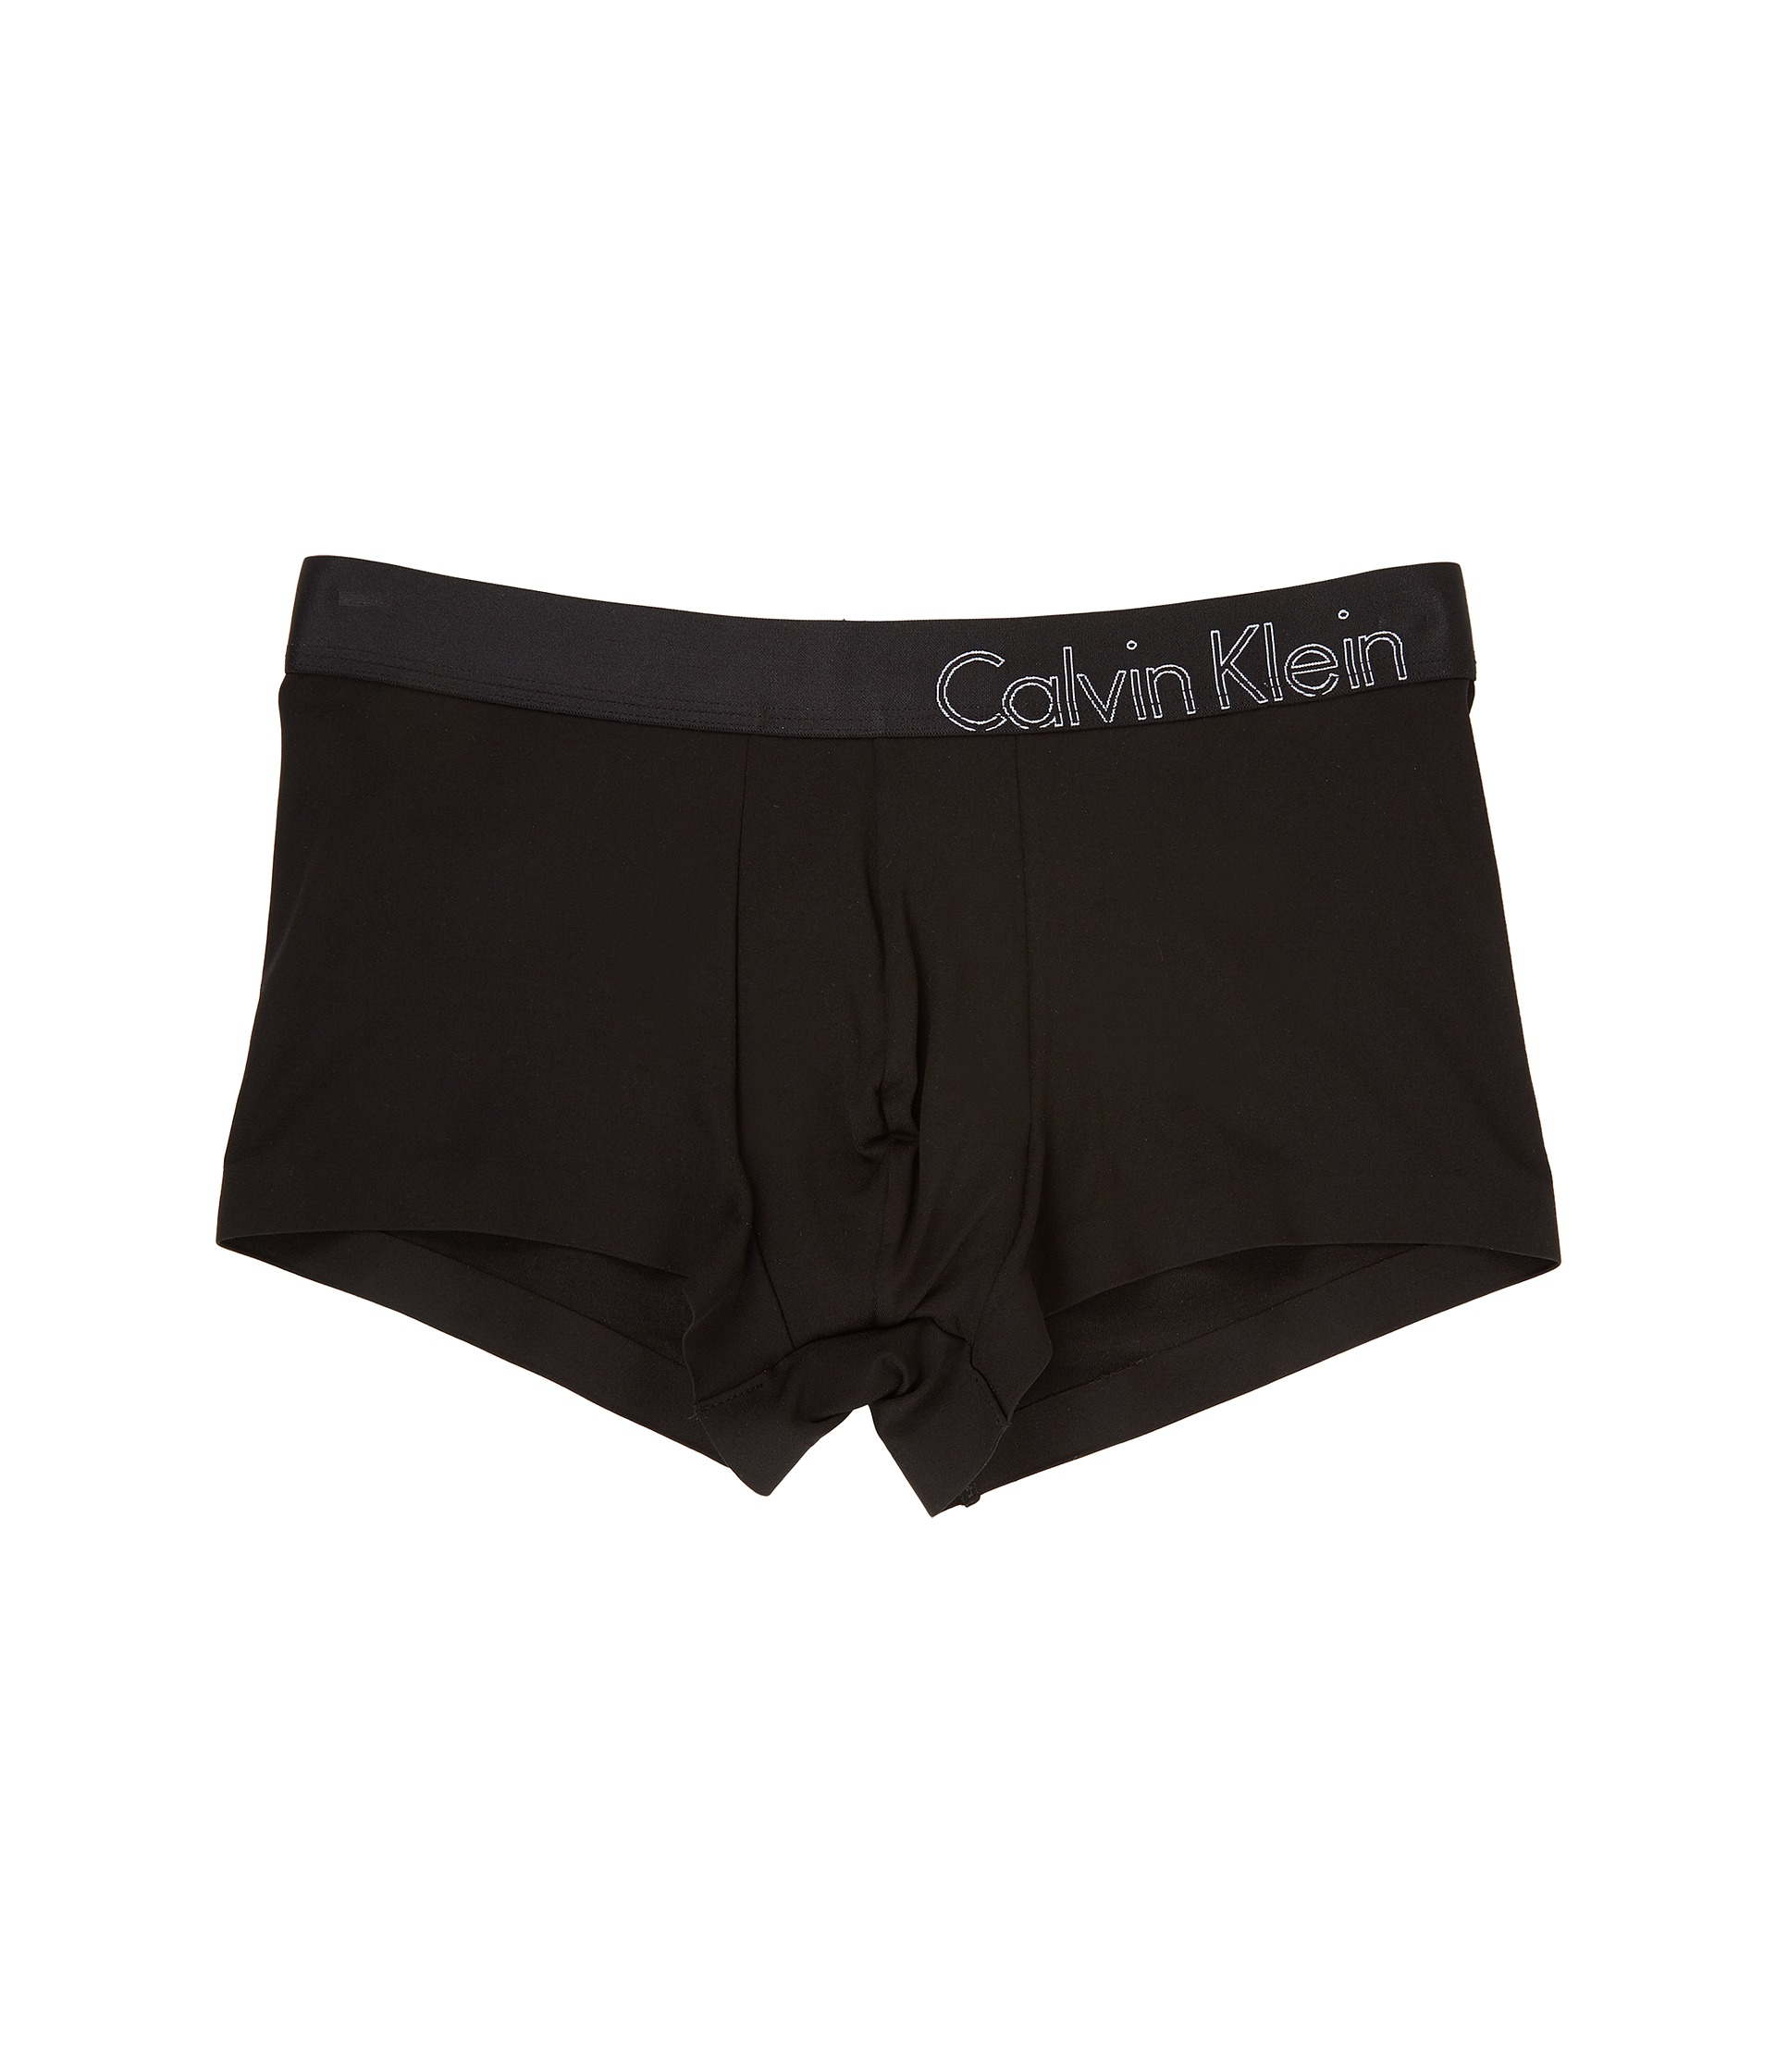 calvin klein underwear edge micro low rise trunk zappos. Black Bedroom Furniture Sets. Home Design Ideas